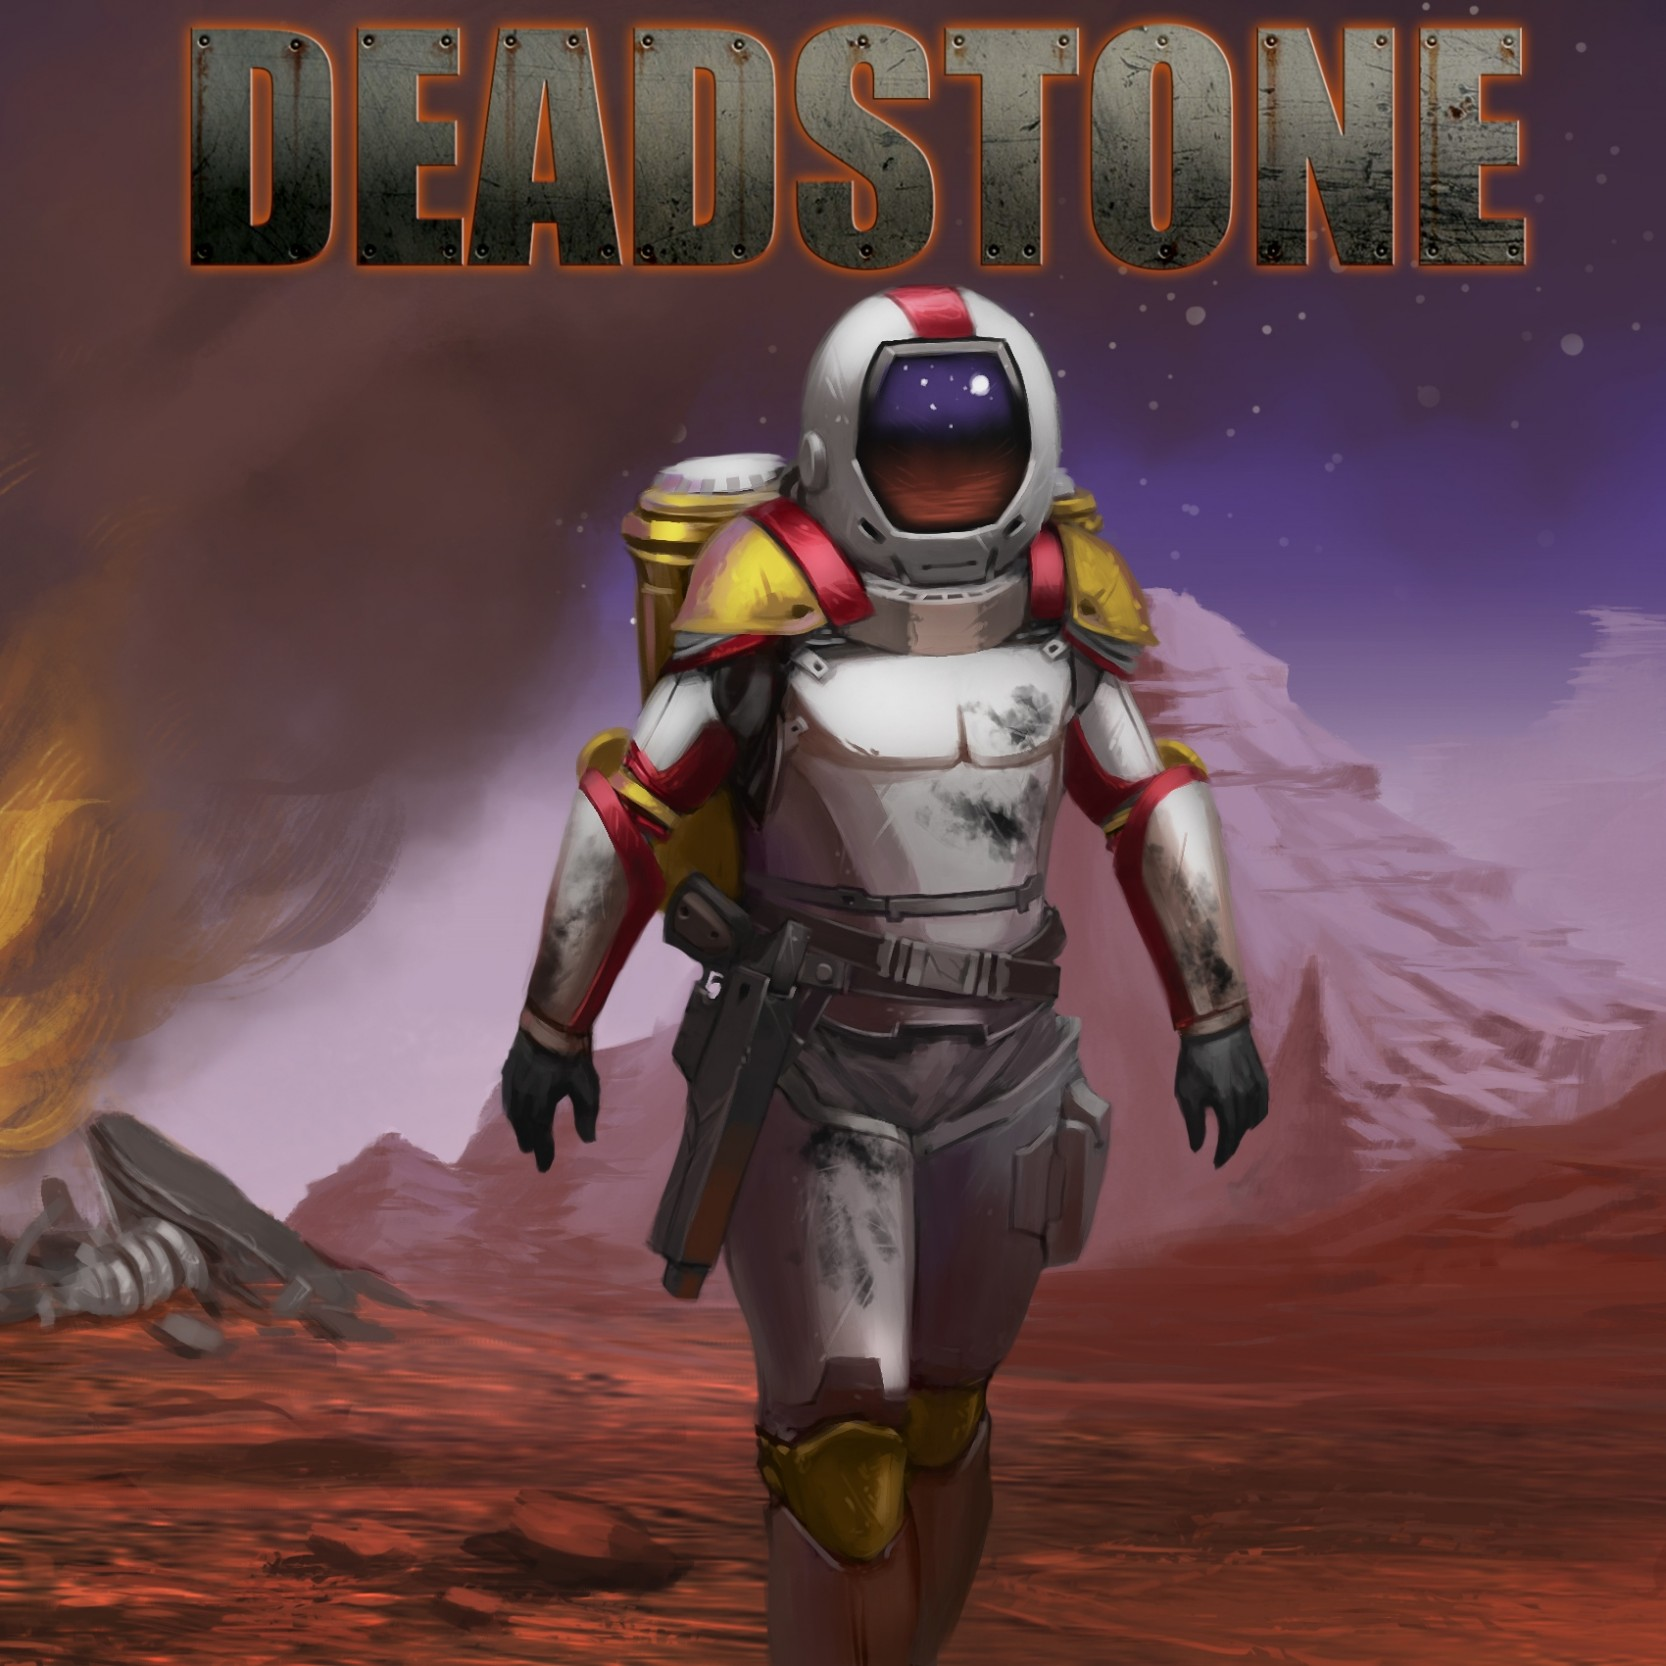 Image result for Deadstone game